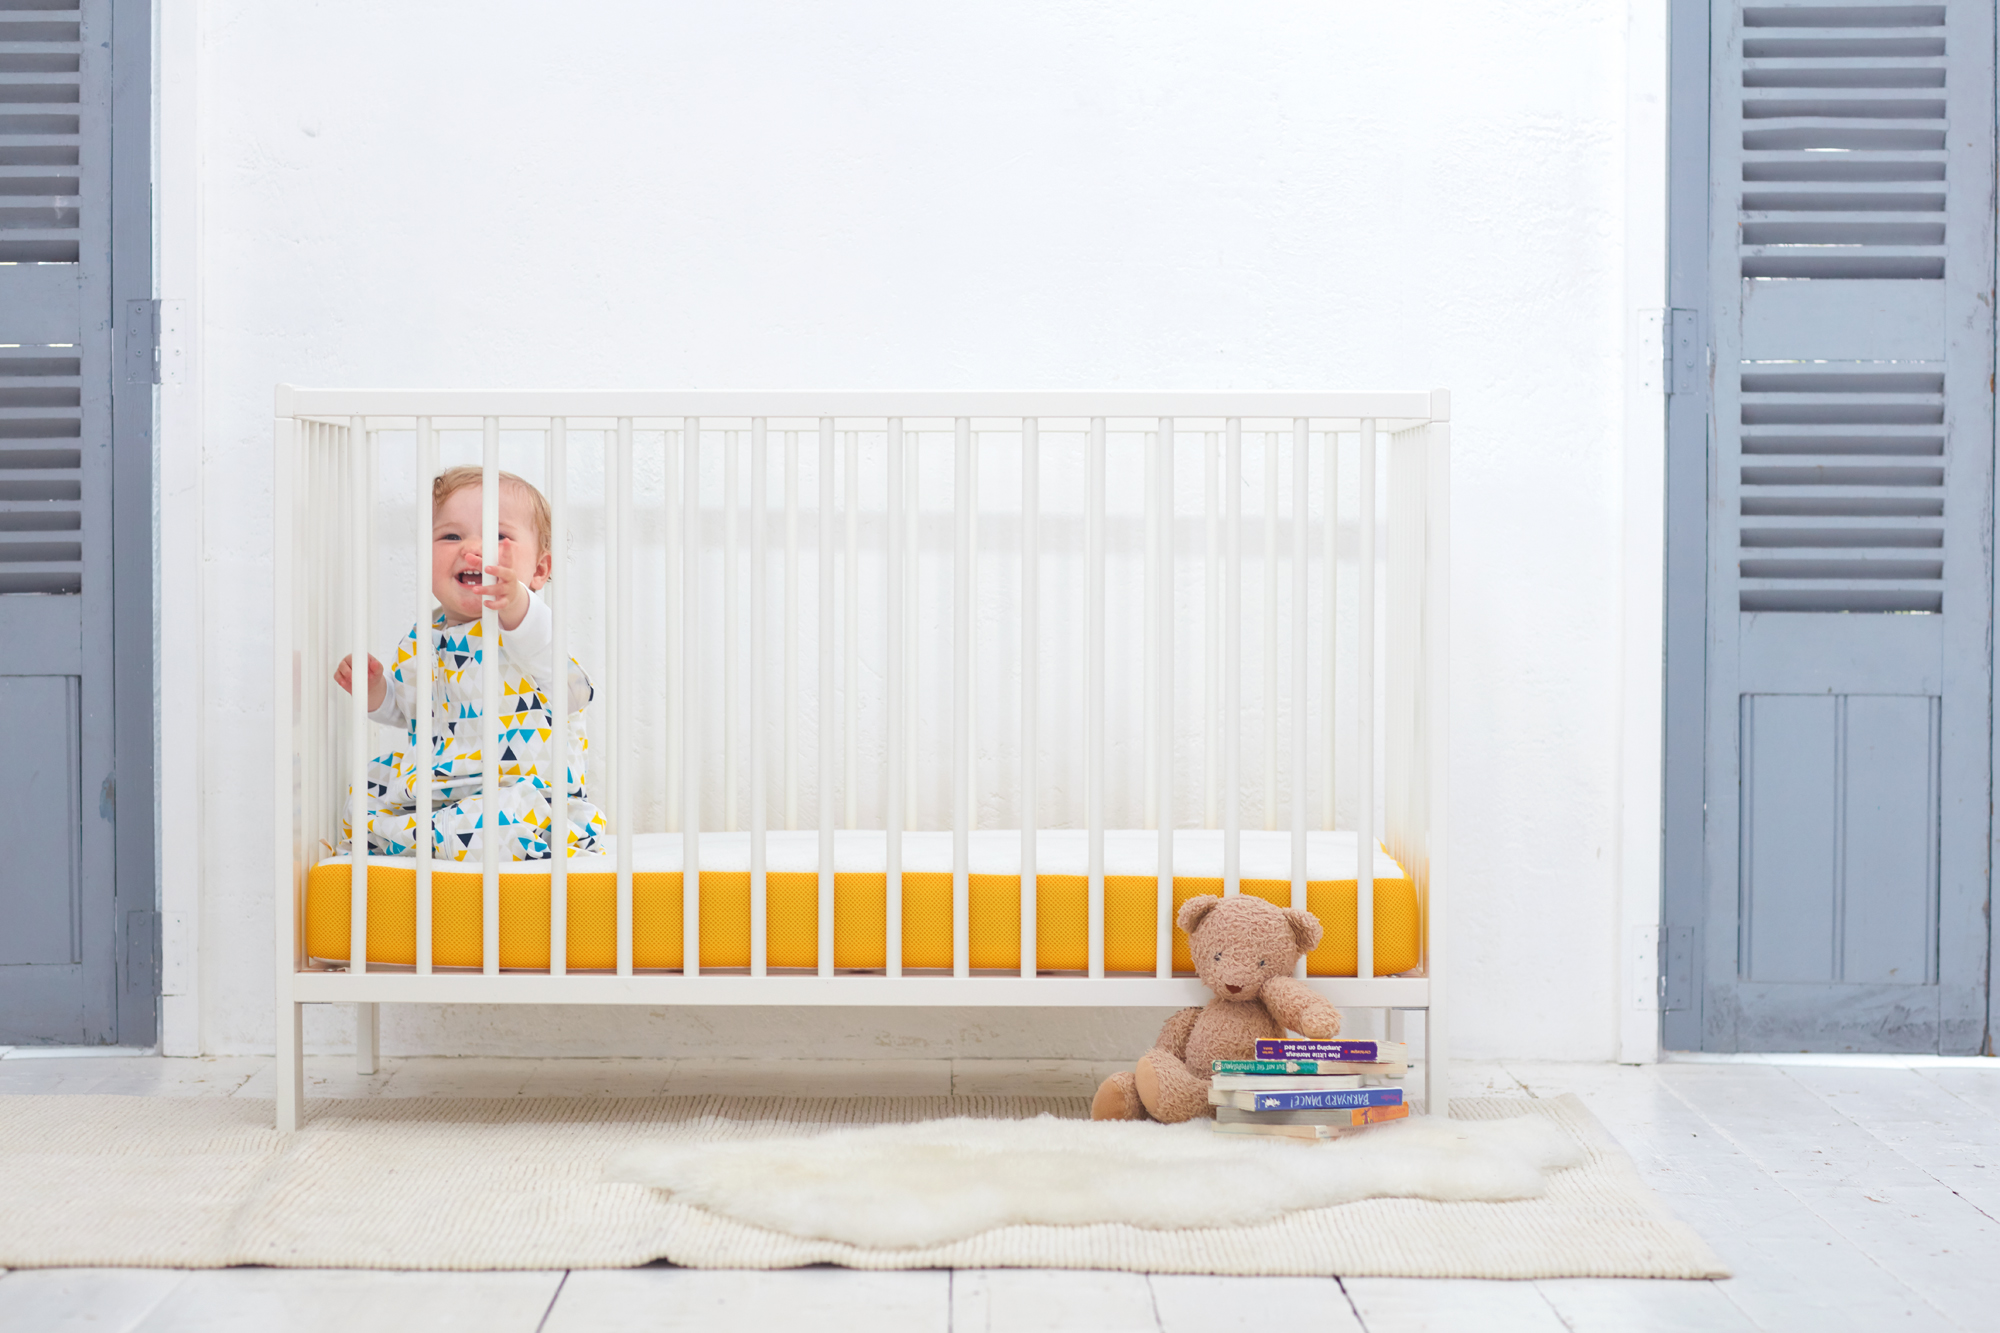 Eve Sleep Eve Sleep Baby Mattress Bloved Blog